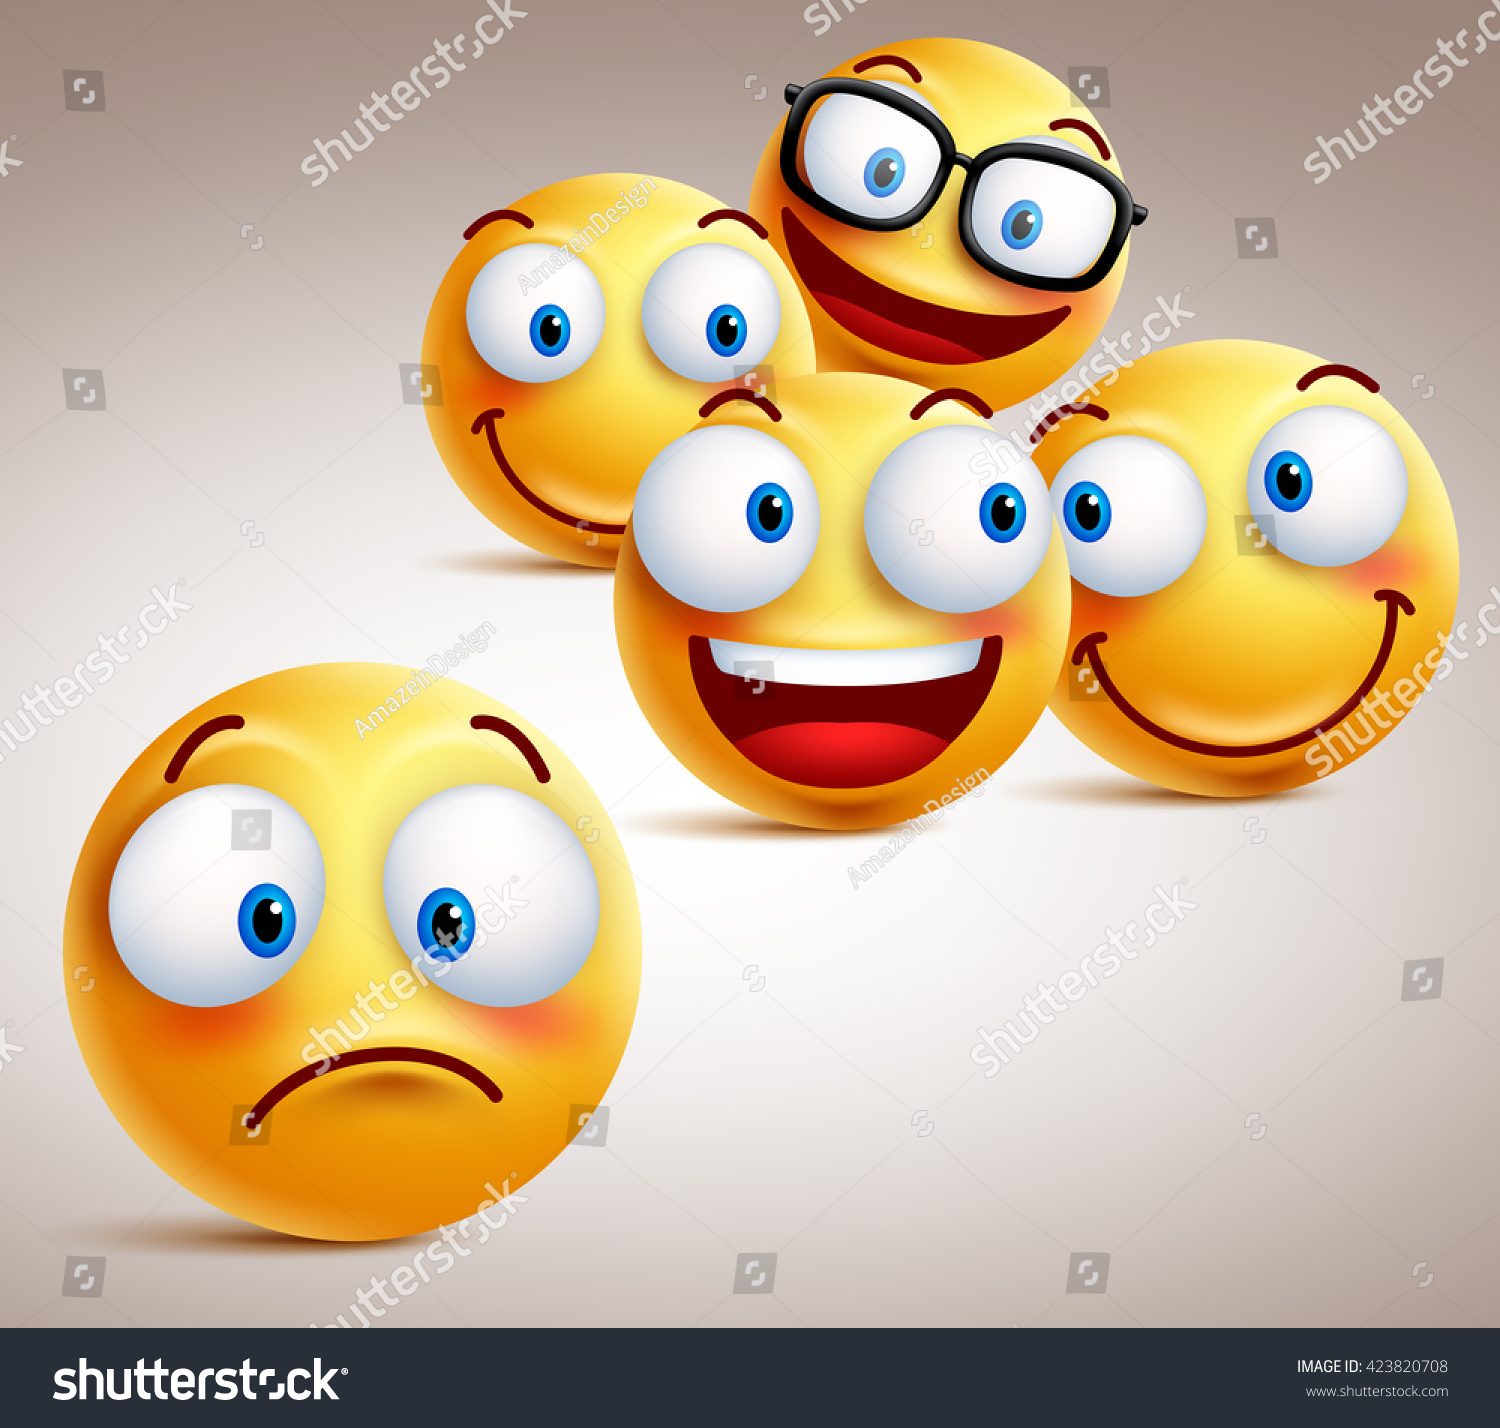 lonely smiley face vector character concept stock vector 423820708